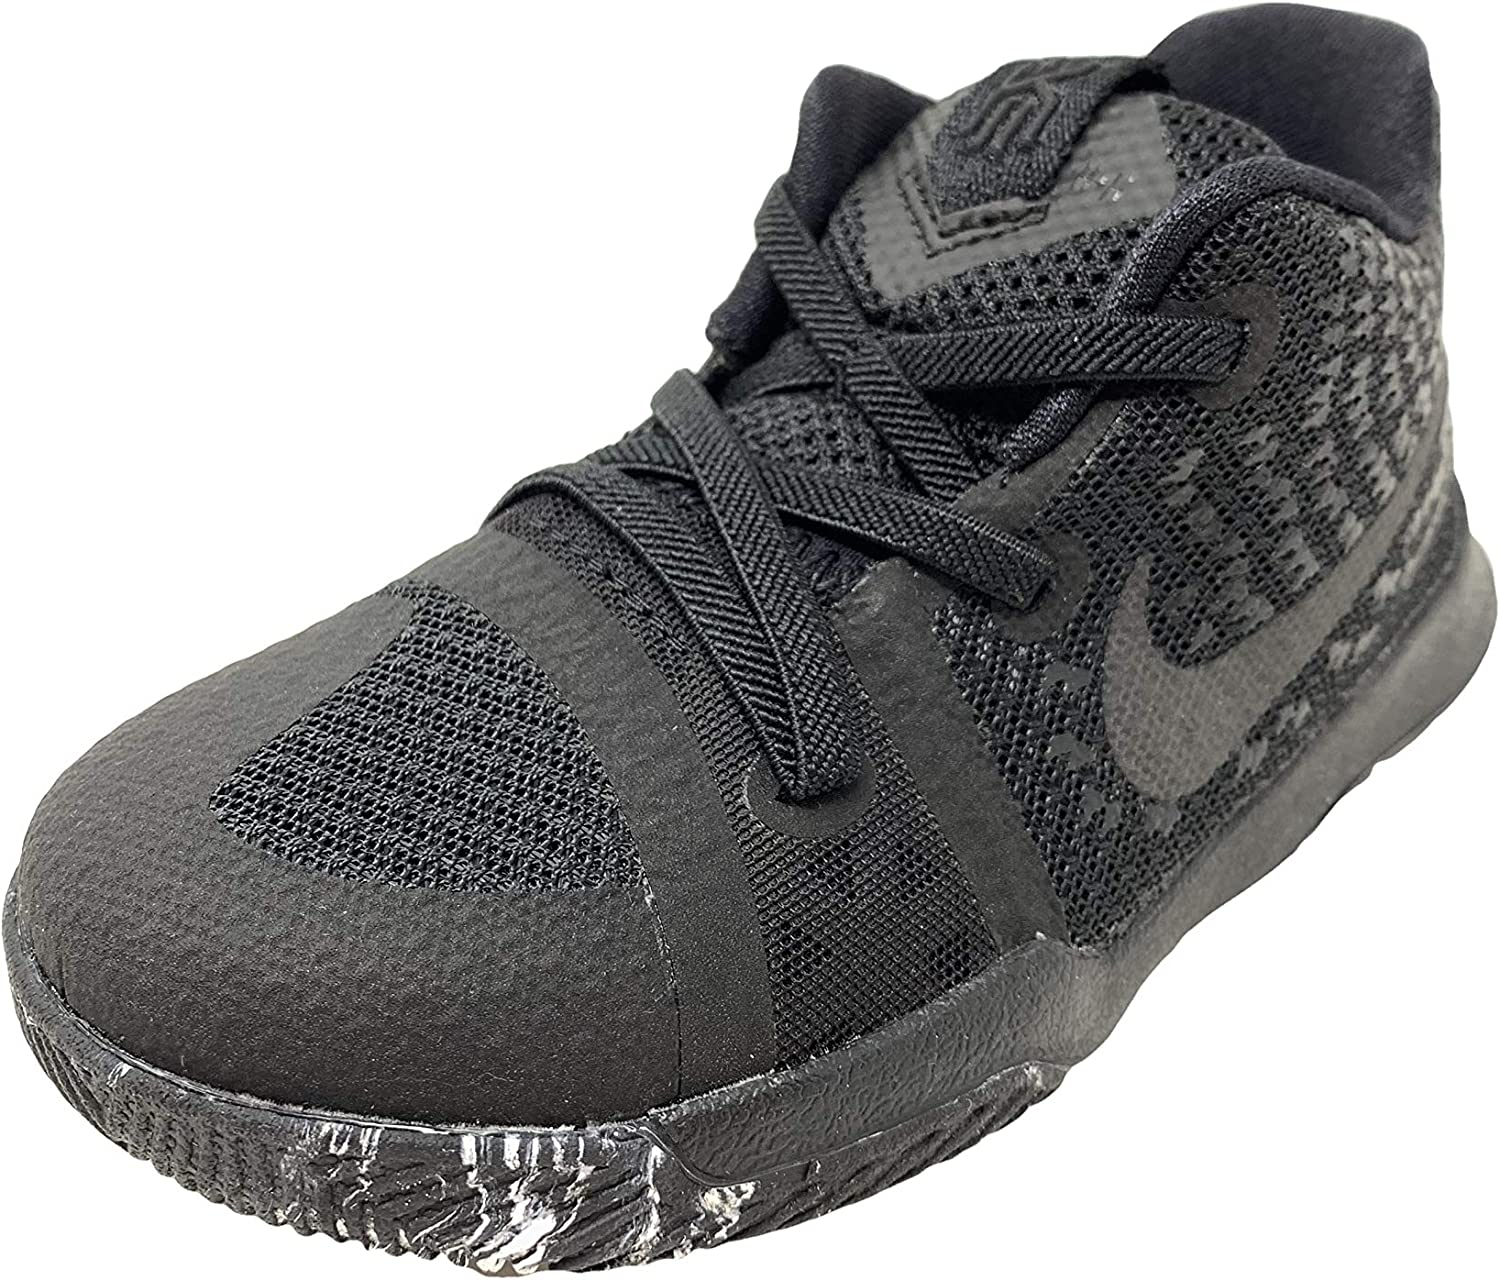 Nike Kyrie 3 Marble Toddler Boys Shoe